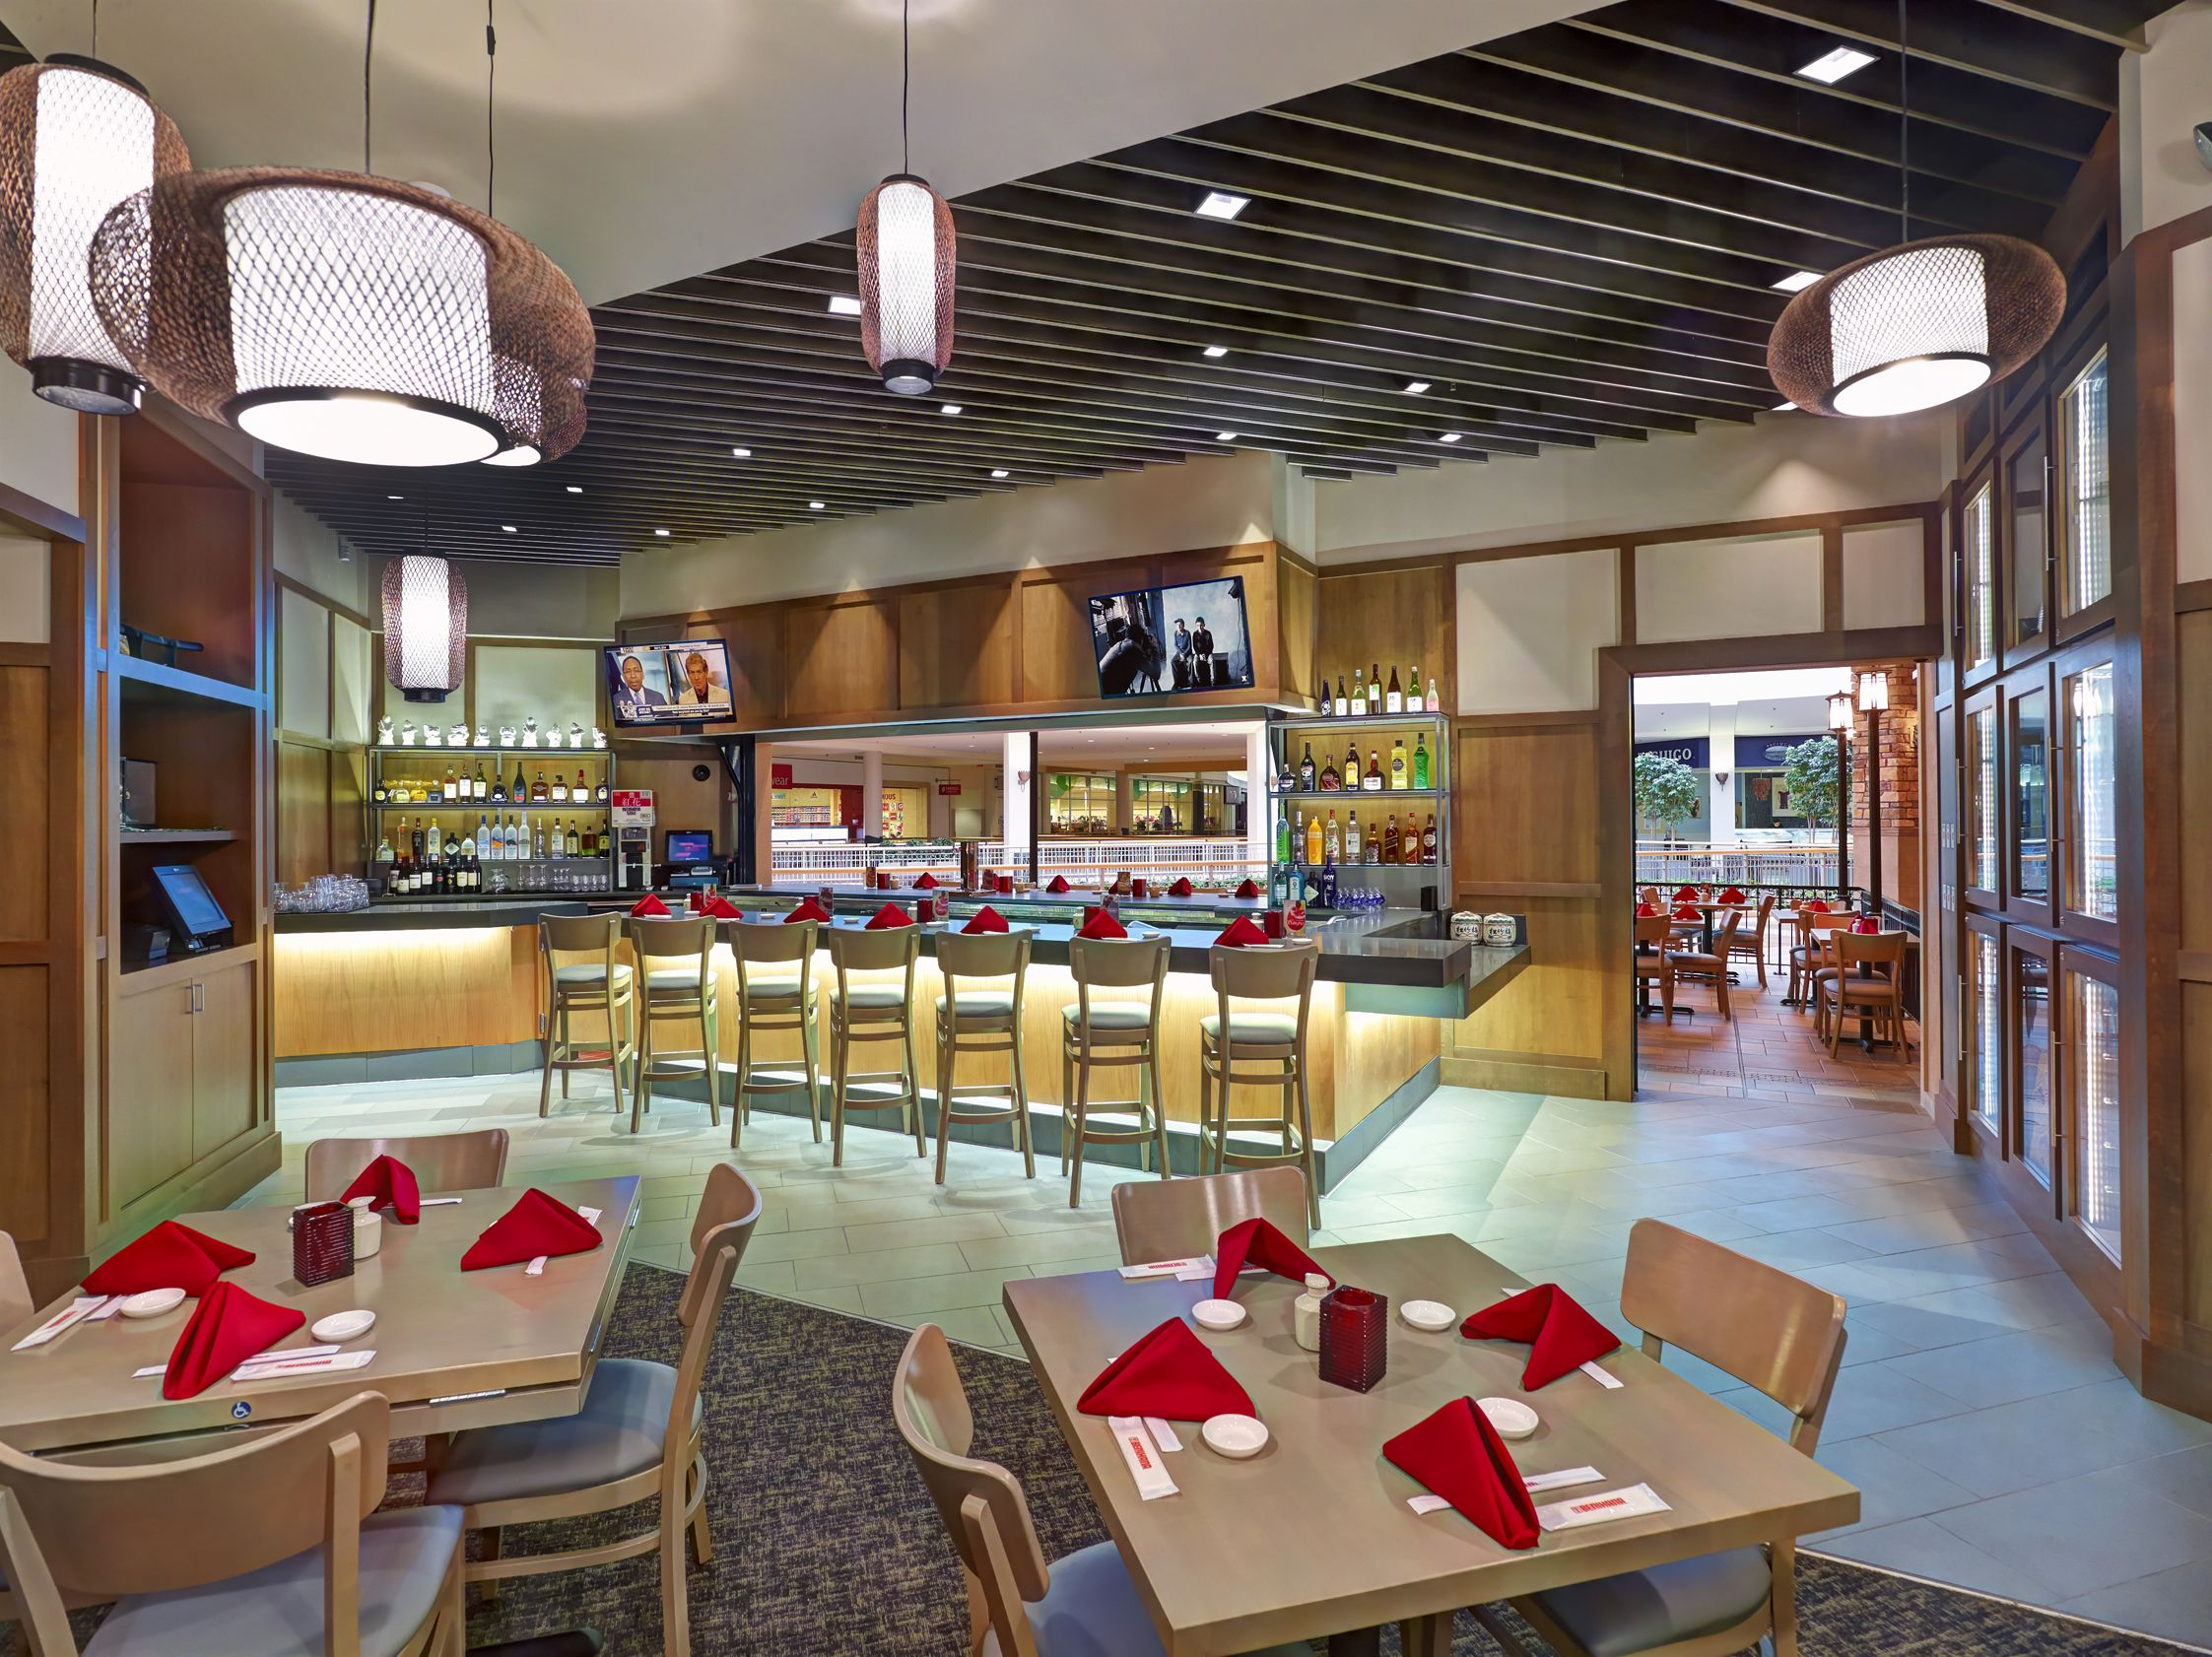 best images about benihana restaurant locations benihana bloomington mn 55425 our newest location in mall of america